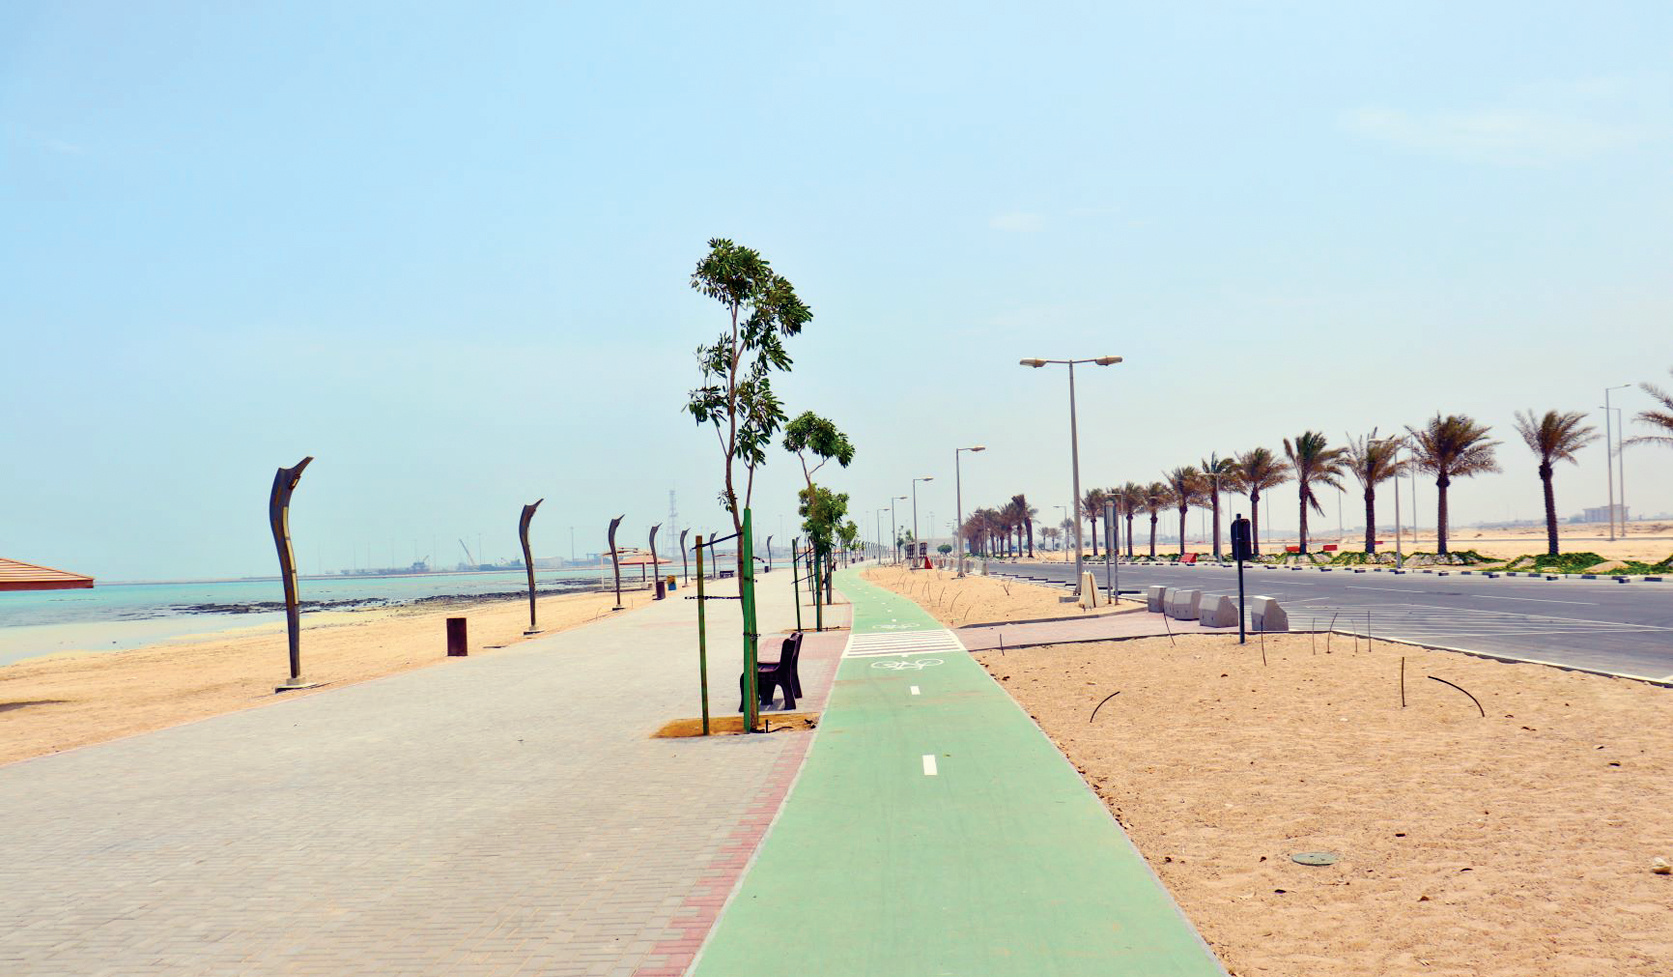 85% of development work completed in Al-Shamal Beach project